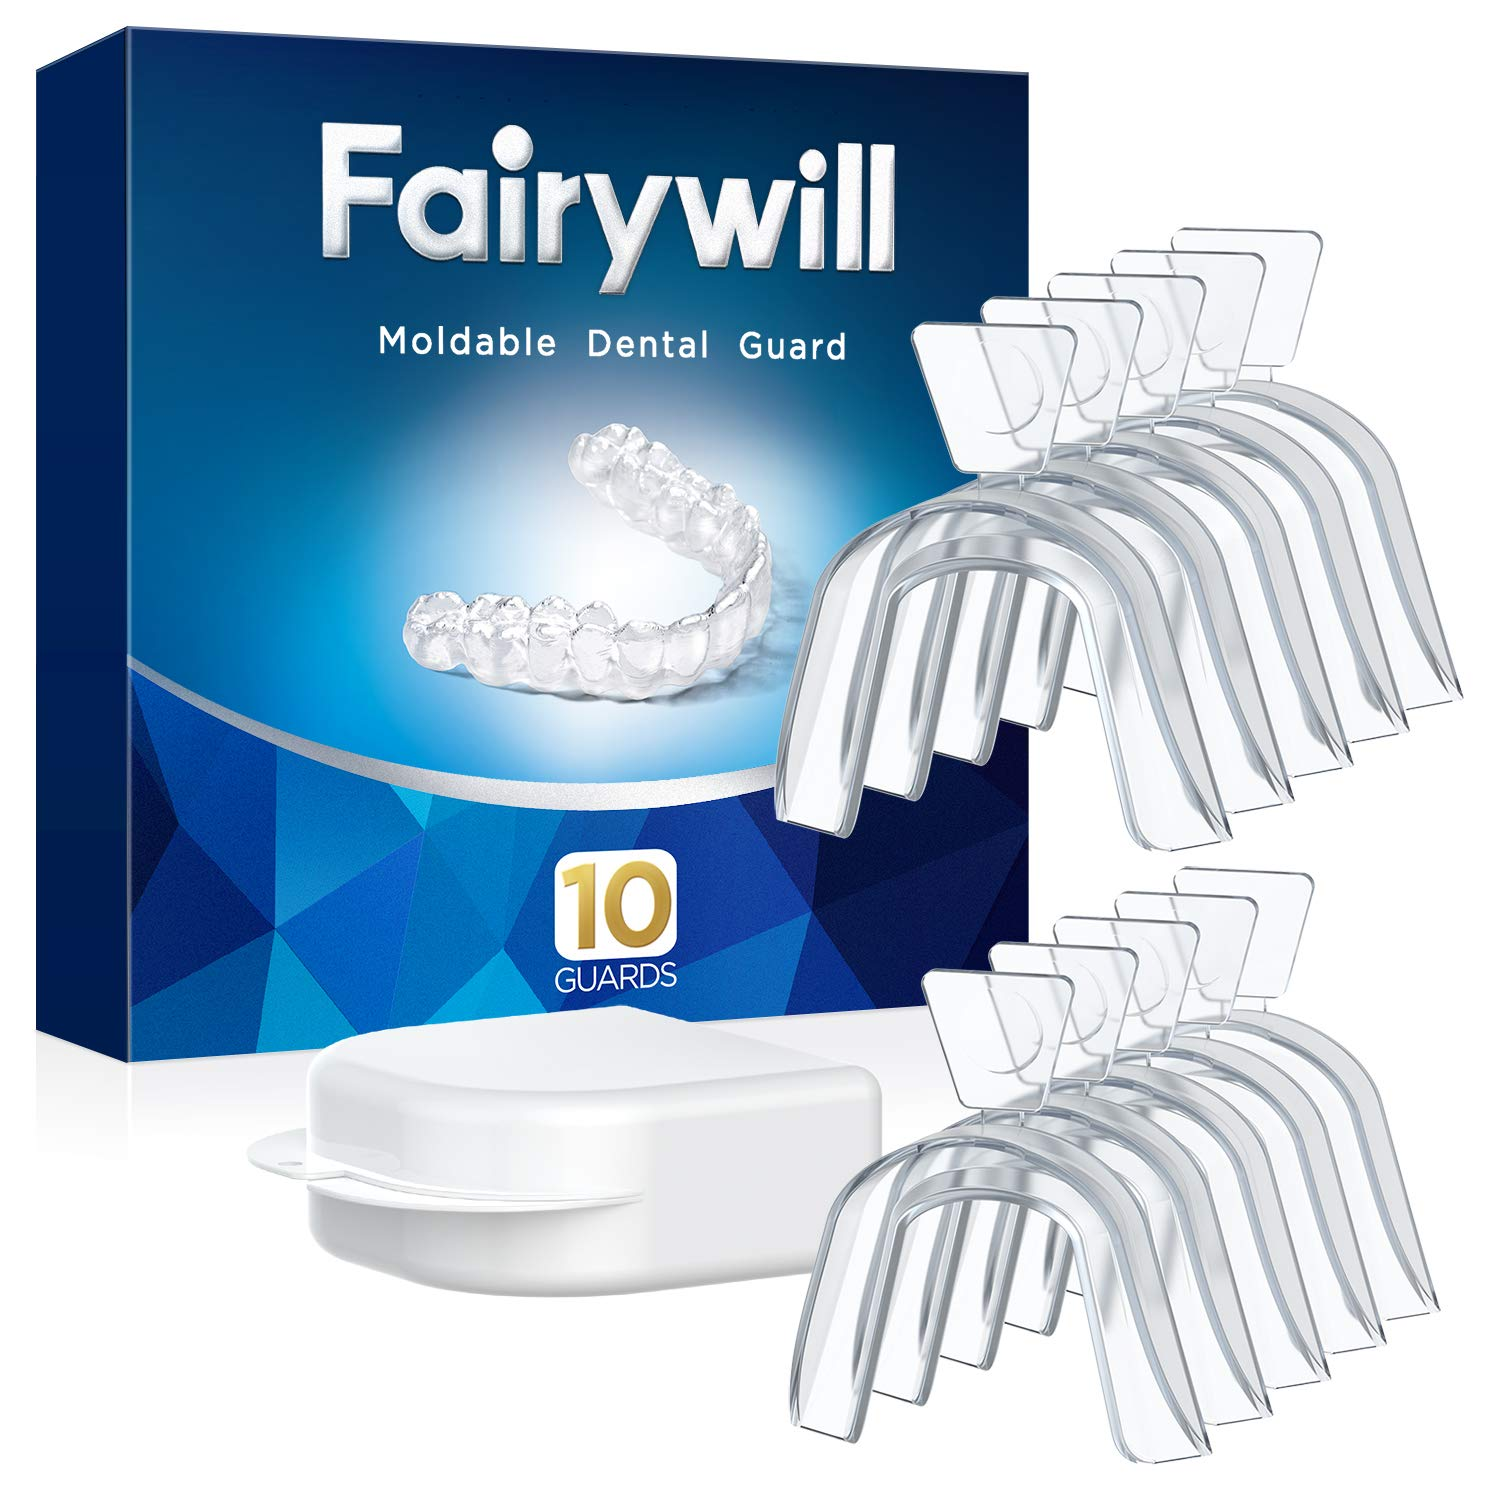 Fairywill Multi Use Moldable Mouth Guard, 10 packs, BPA-free, Dental Guard